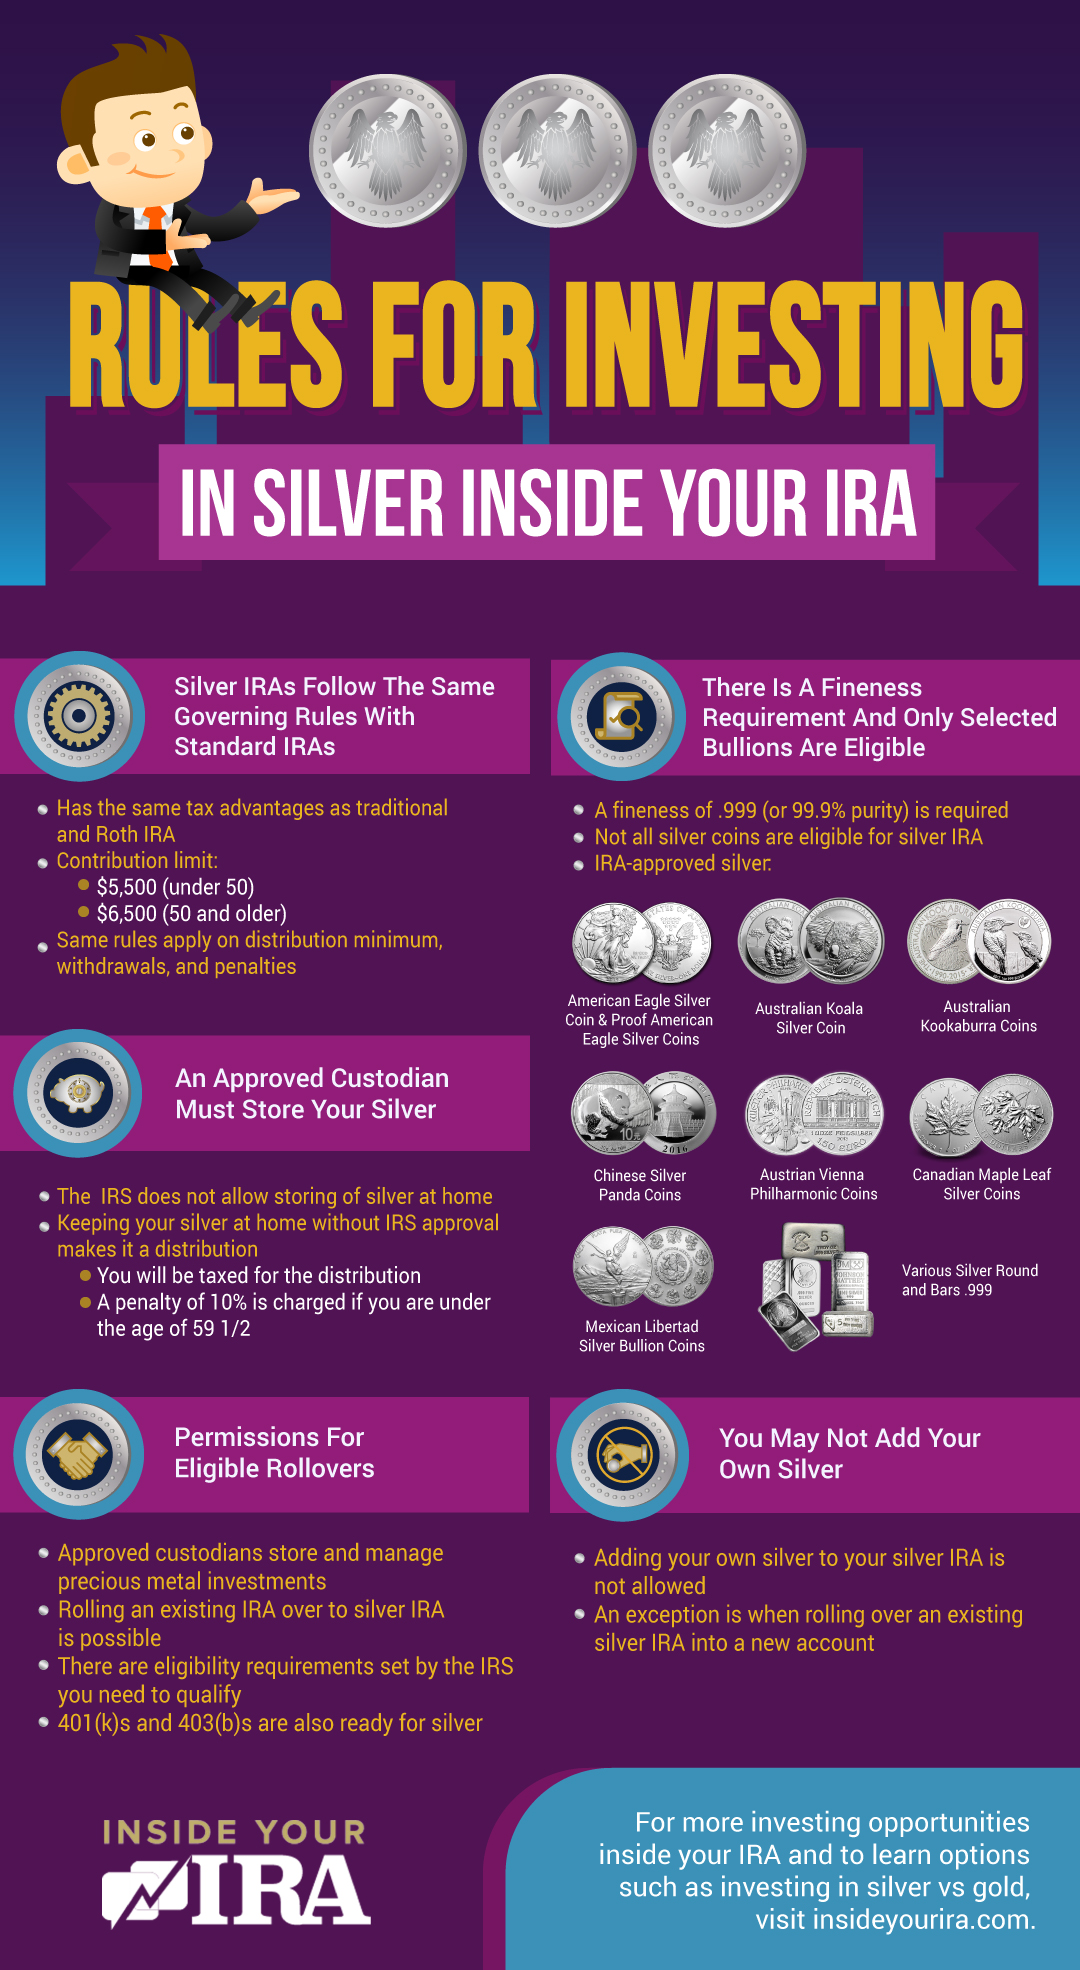 Inside Your IRA-Rules For Investing In Silver Inside Your IRA